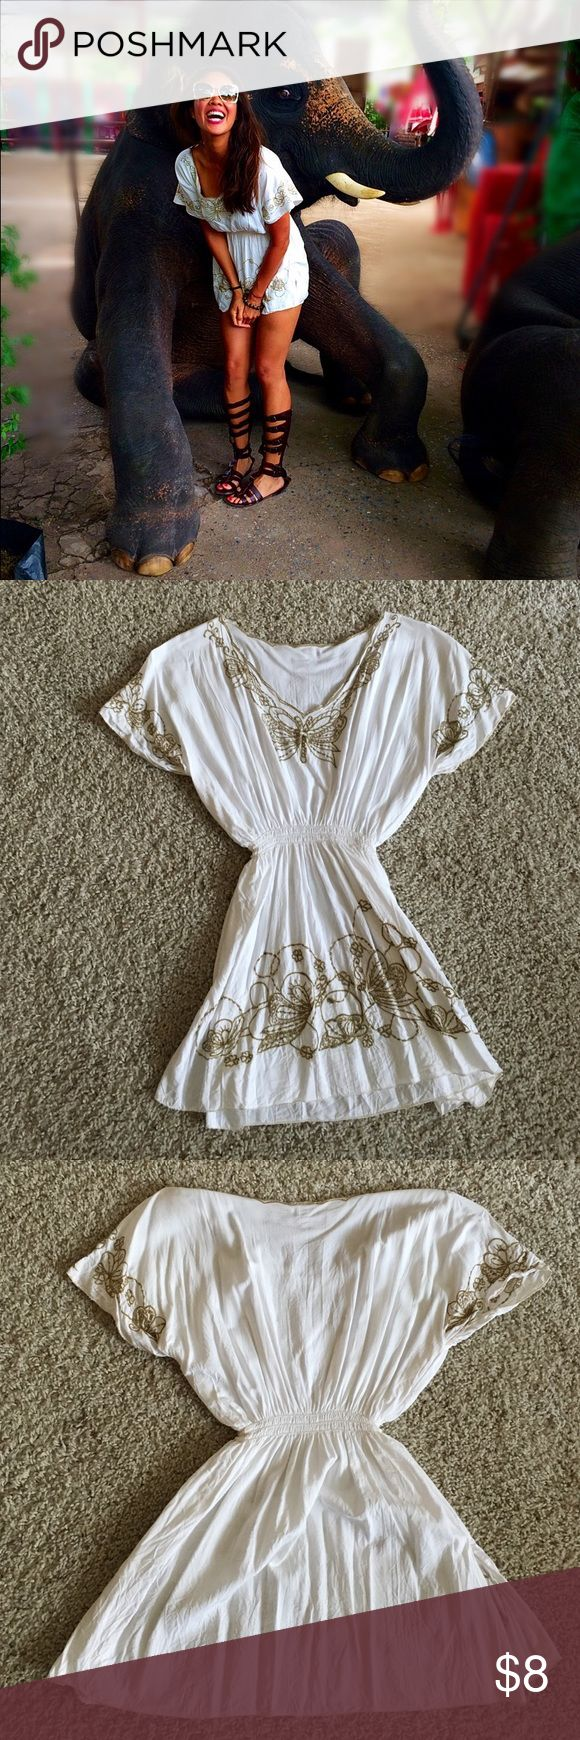 Top White smock top with gold embroidered details.  Condition:  good.  Size:  S. Tops Tunics